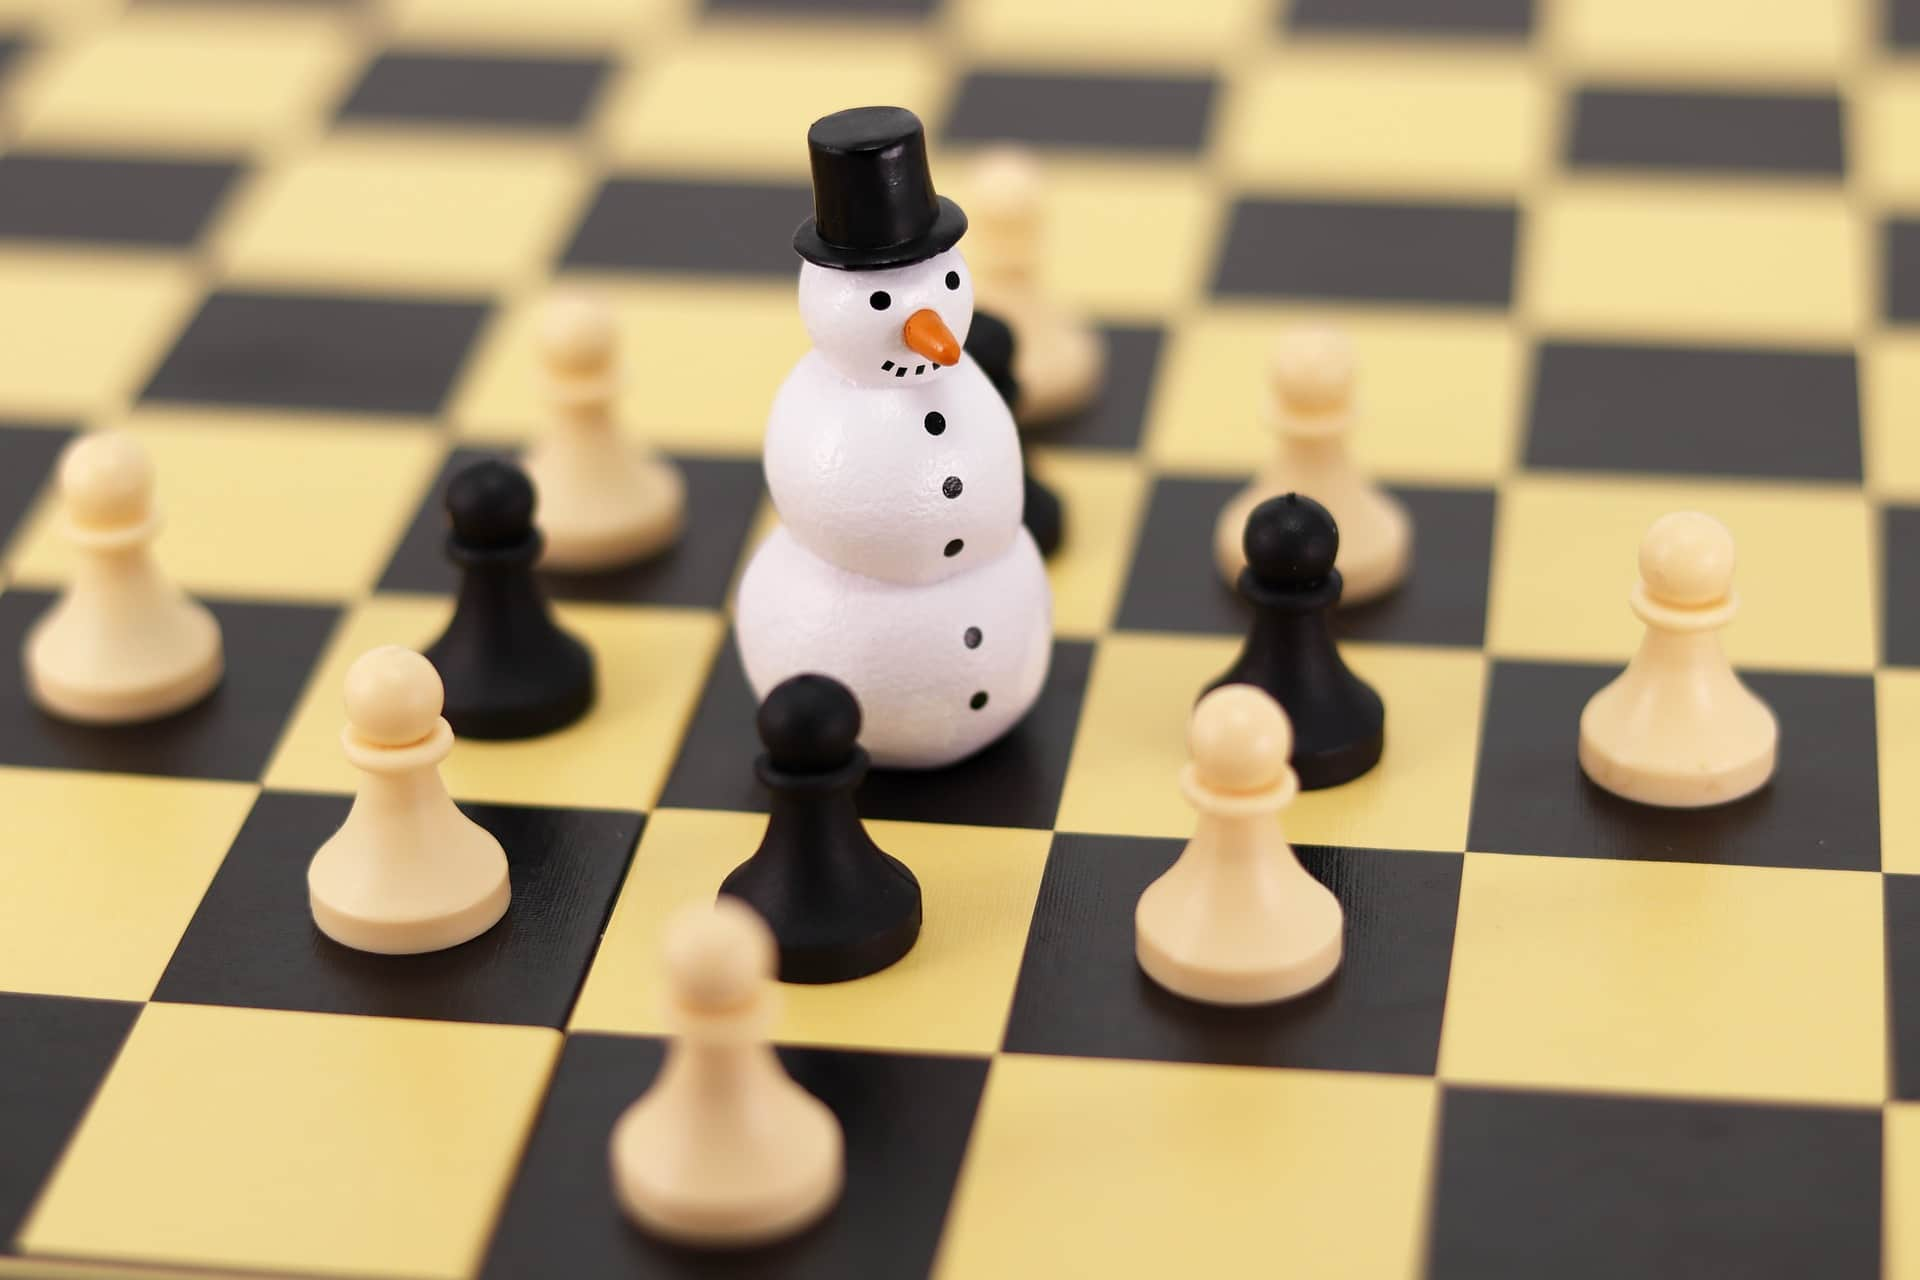 snowman surrounded by chess pieces